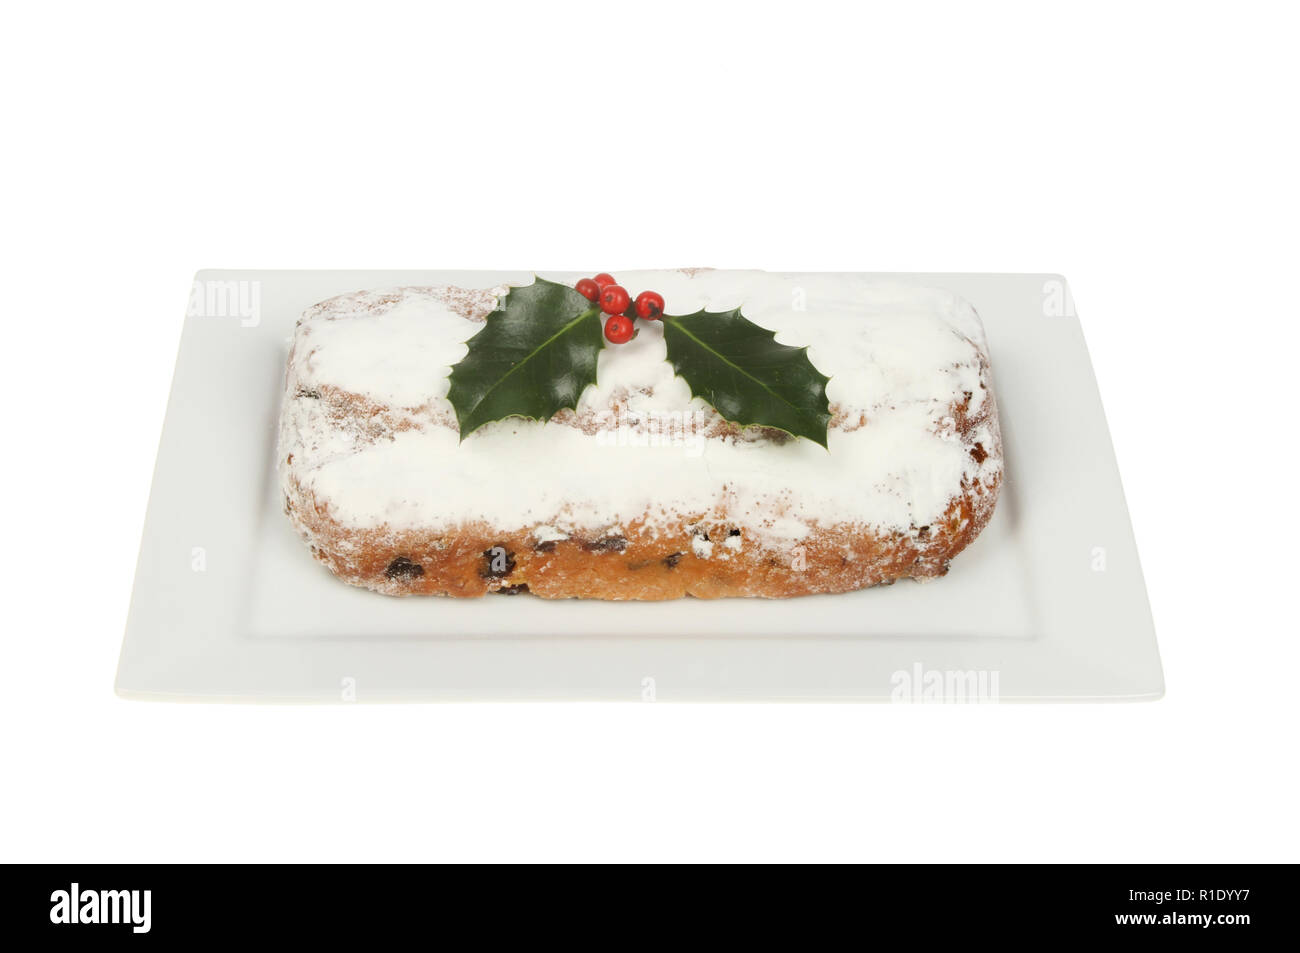 Marzipan stollen on a plate decorated with holly isolated against white - Stock Image